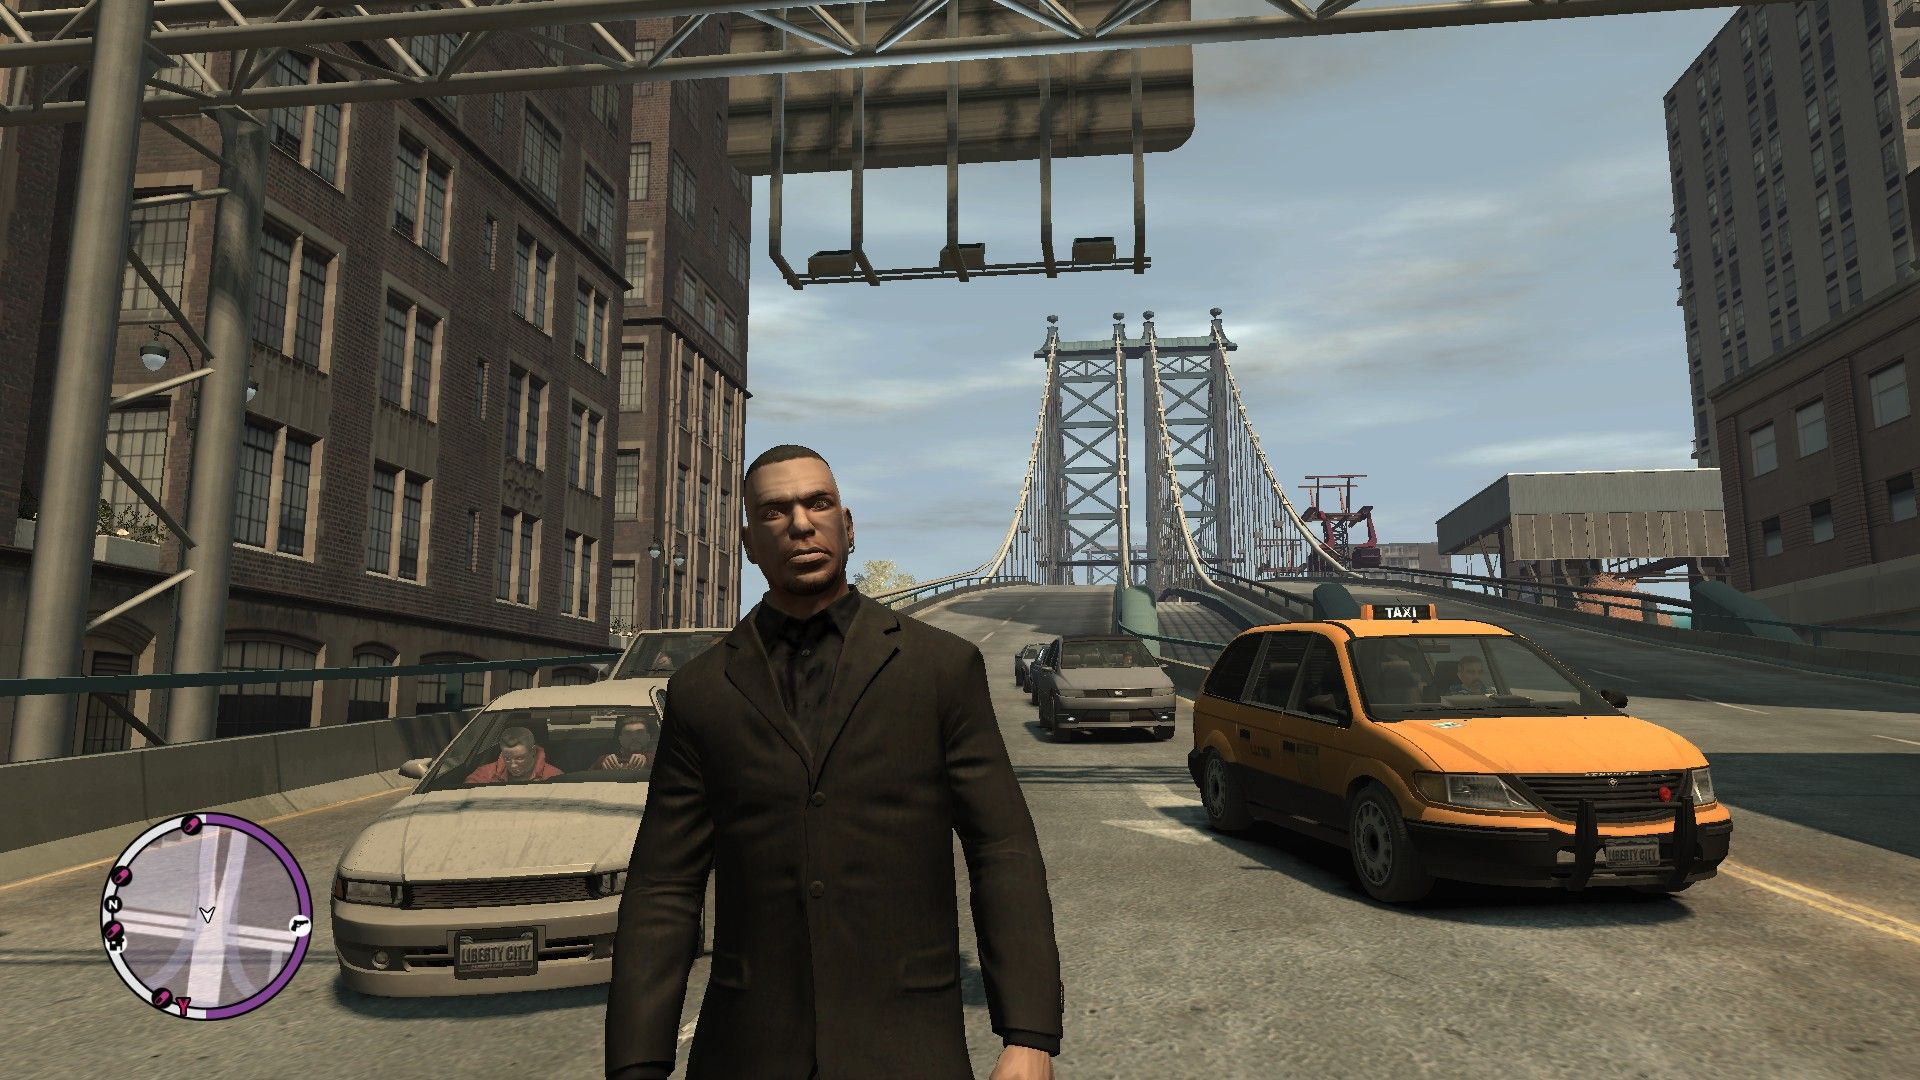 gta episodes from liberty city torrent